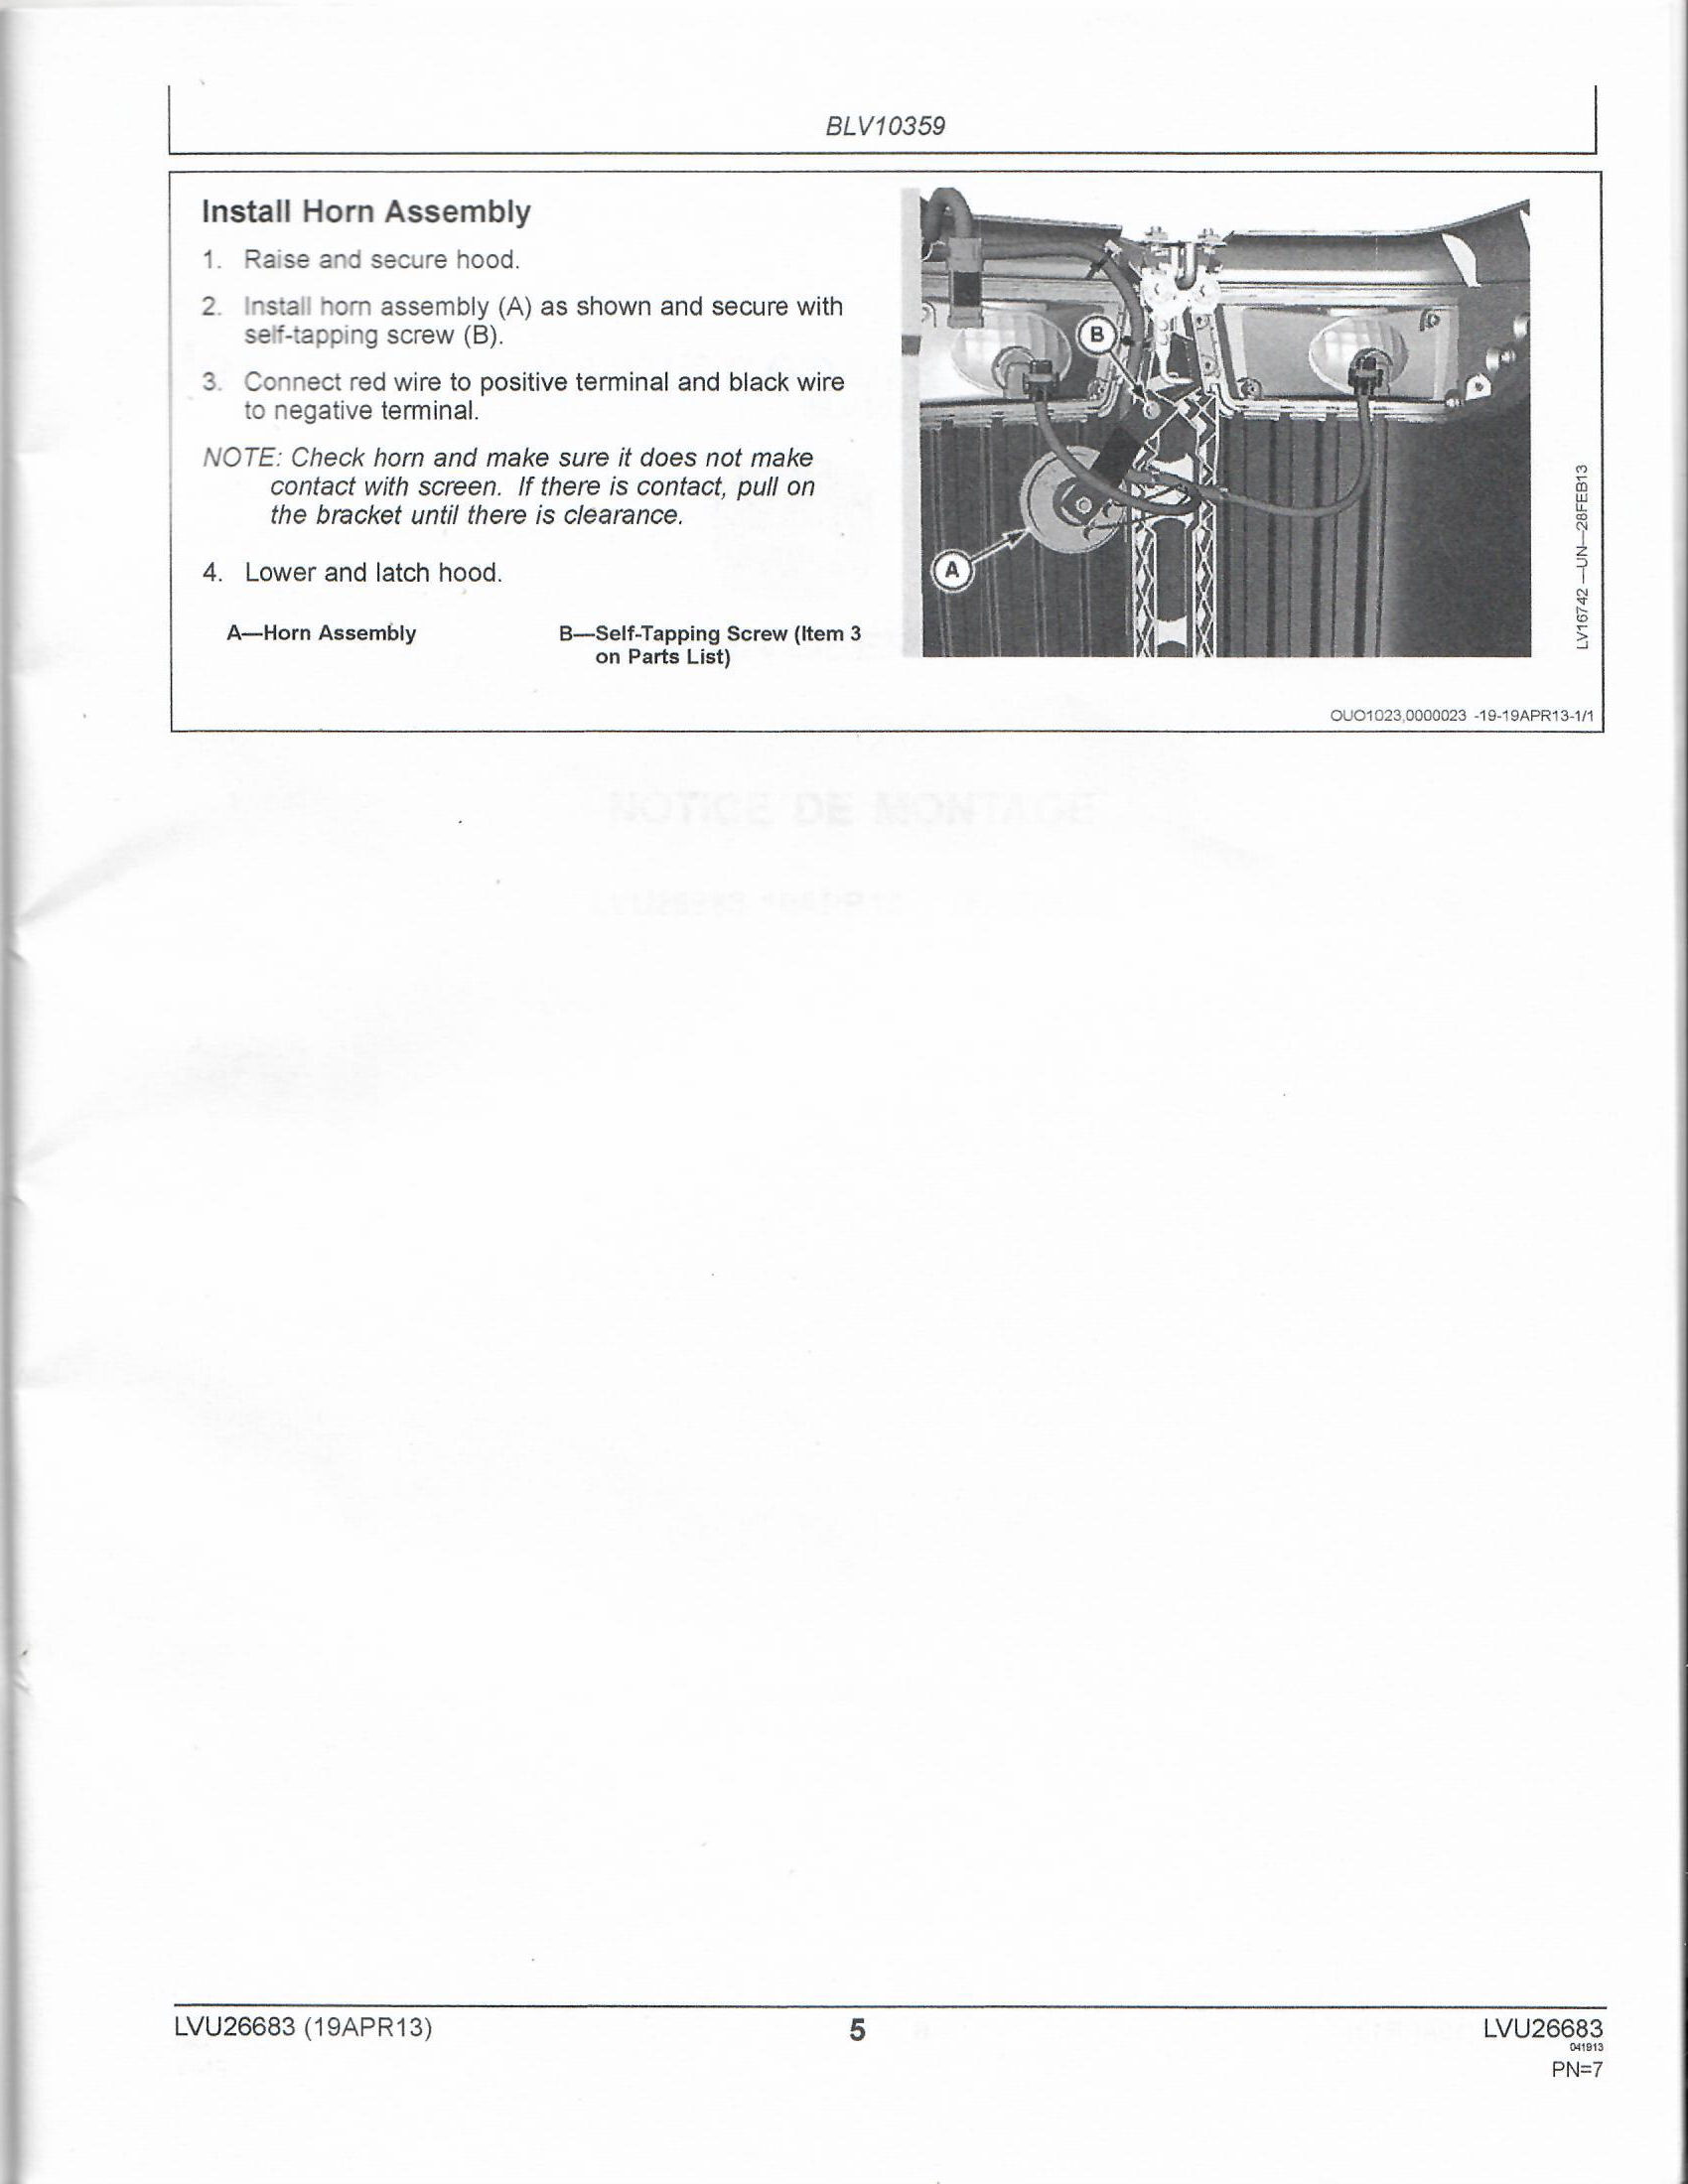 Horn install page 5.jpg